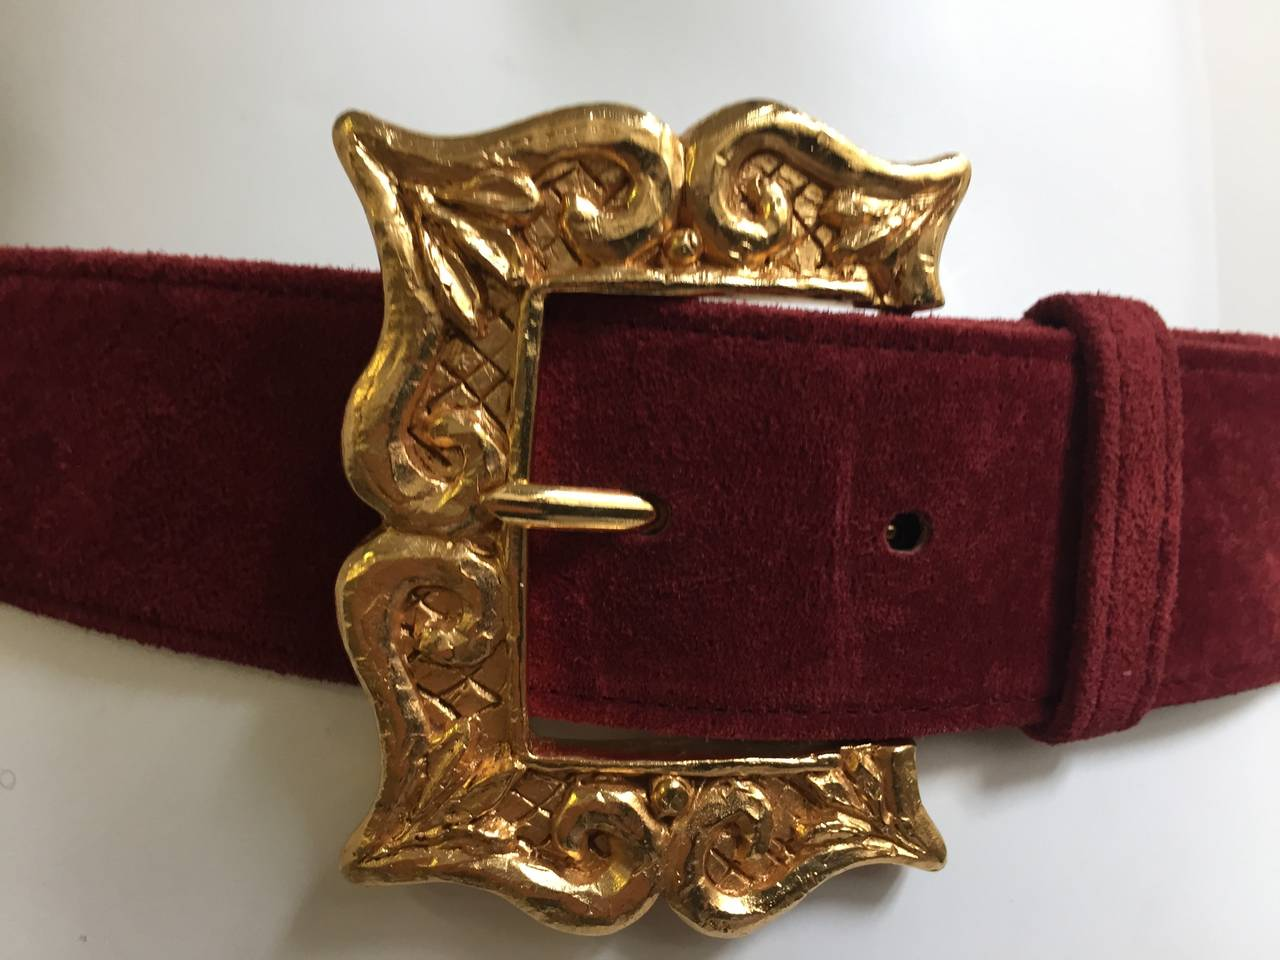 Brown Christian Lacroix 1980s suede belt size 4. For Sale